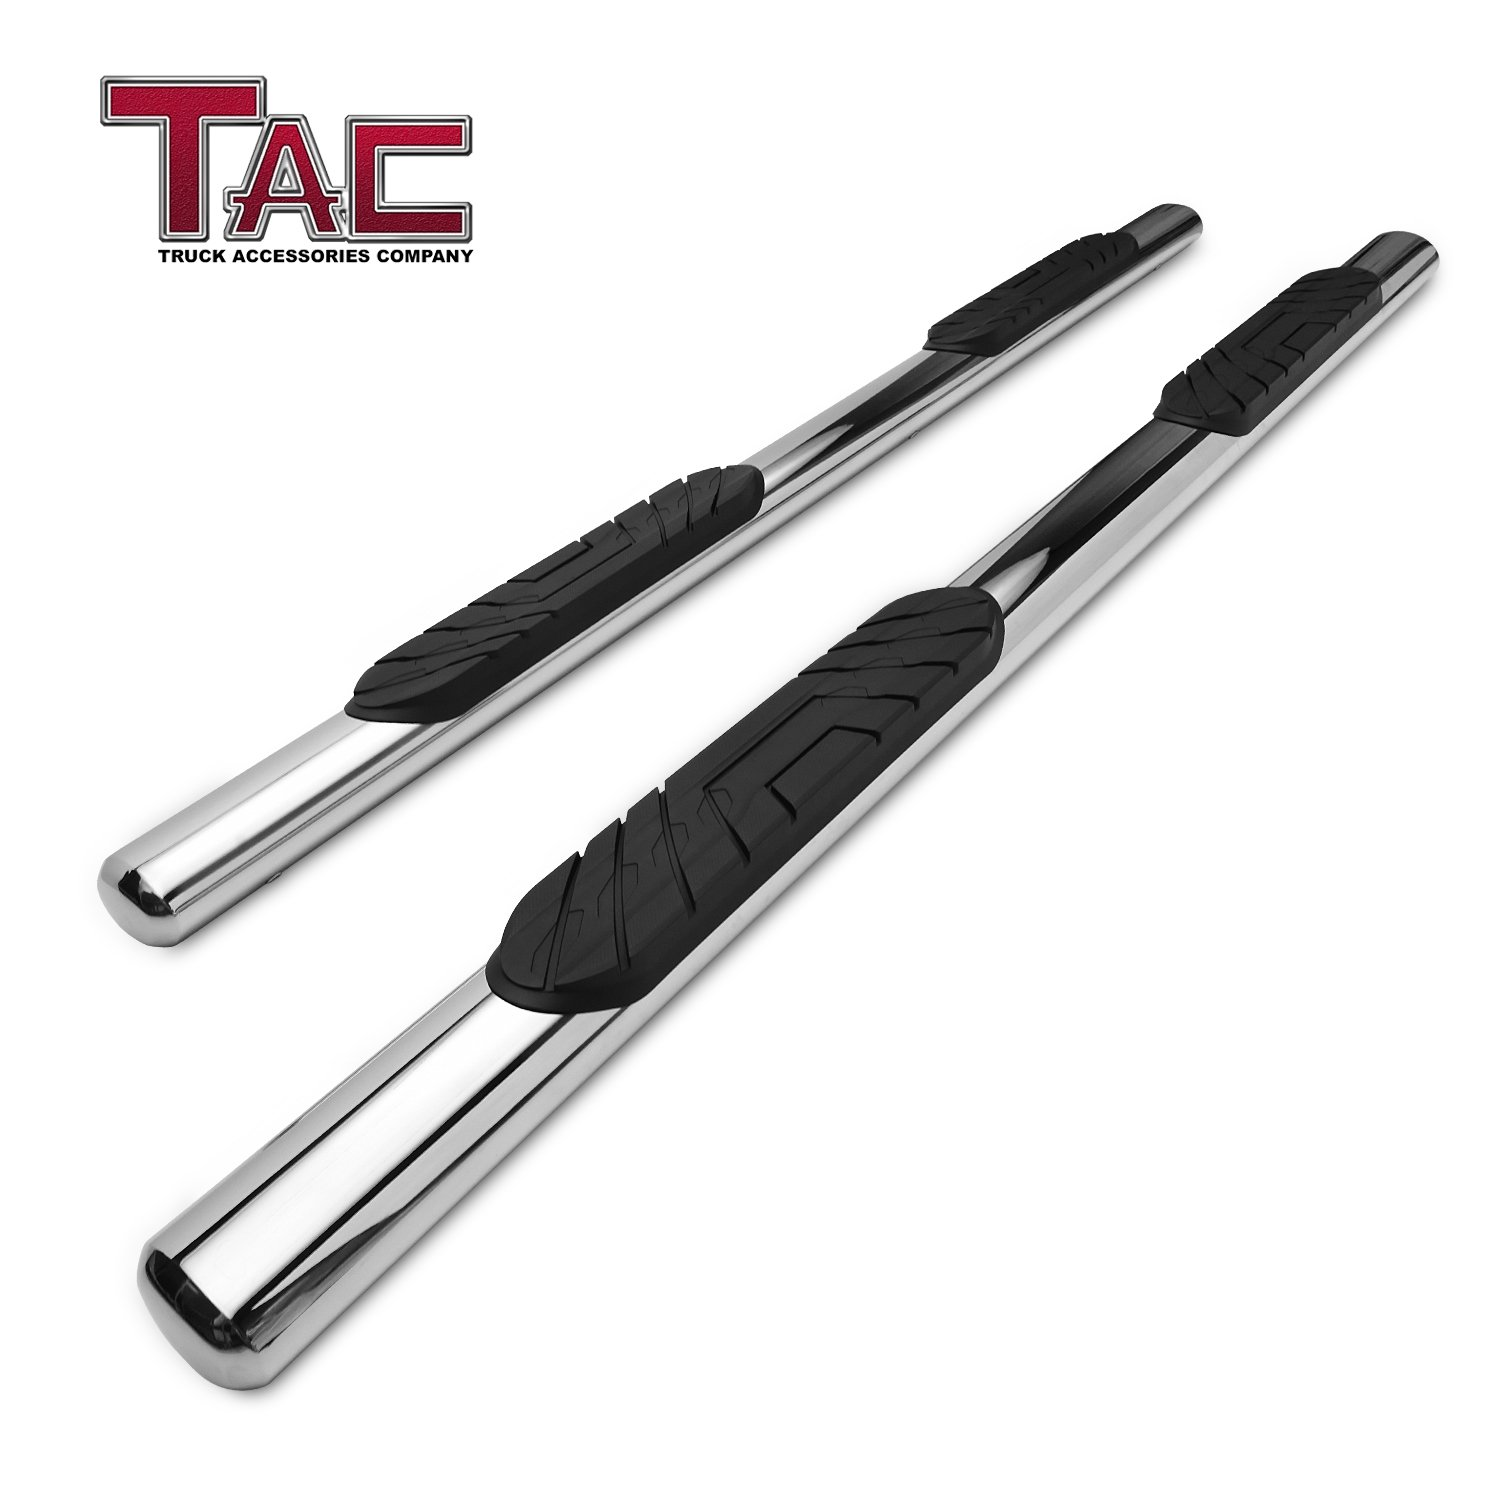 TAC Side Steps Fit 2019 Chevy Silverado/GMC Sierra 1500 Crew Cab Truck Pickup 4'' Oval Tube Stainless Steel Side Bars Nerf Bars Step Rails Running Boards Off Road Exterior Accessories (2 Pieces)